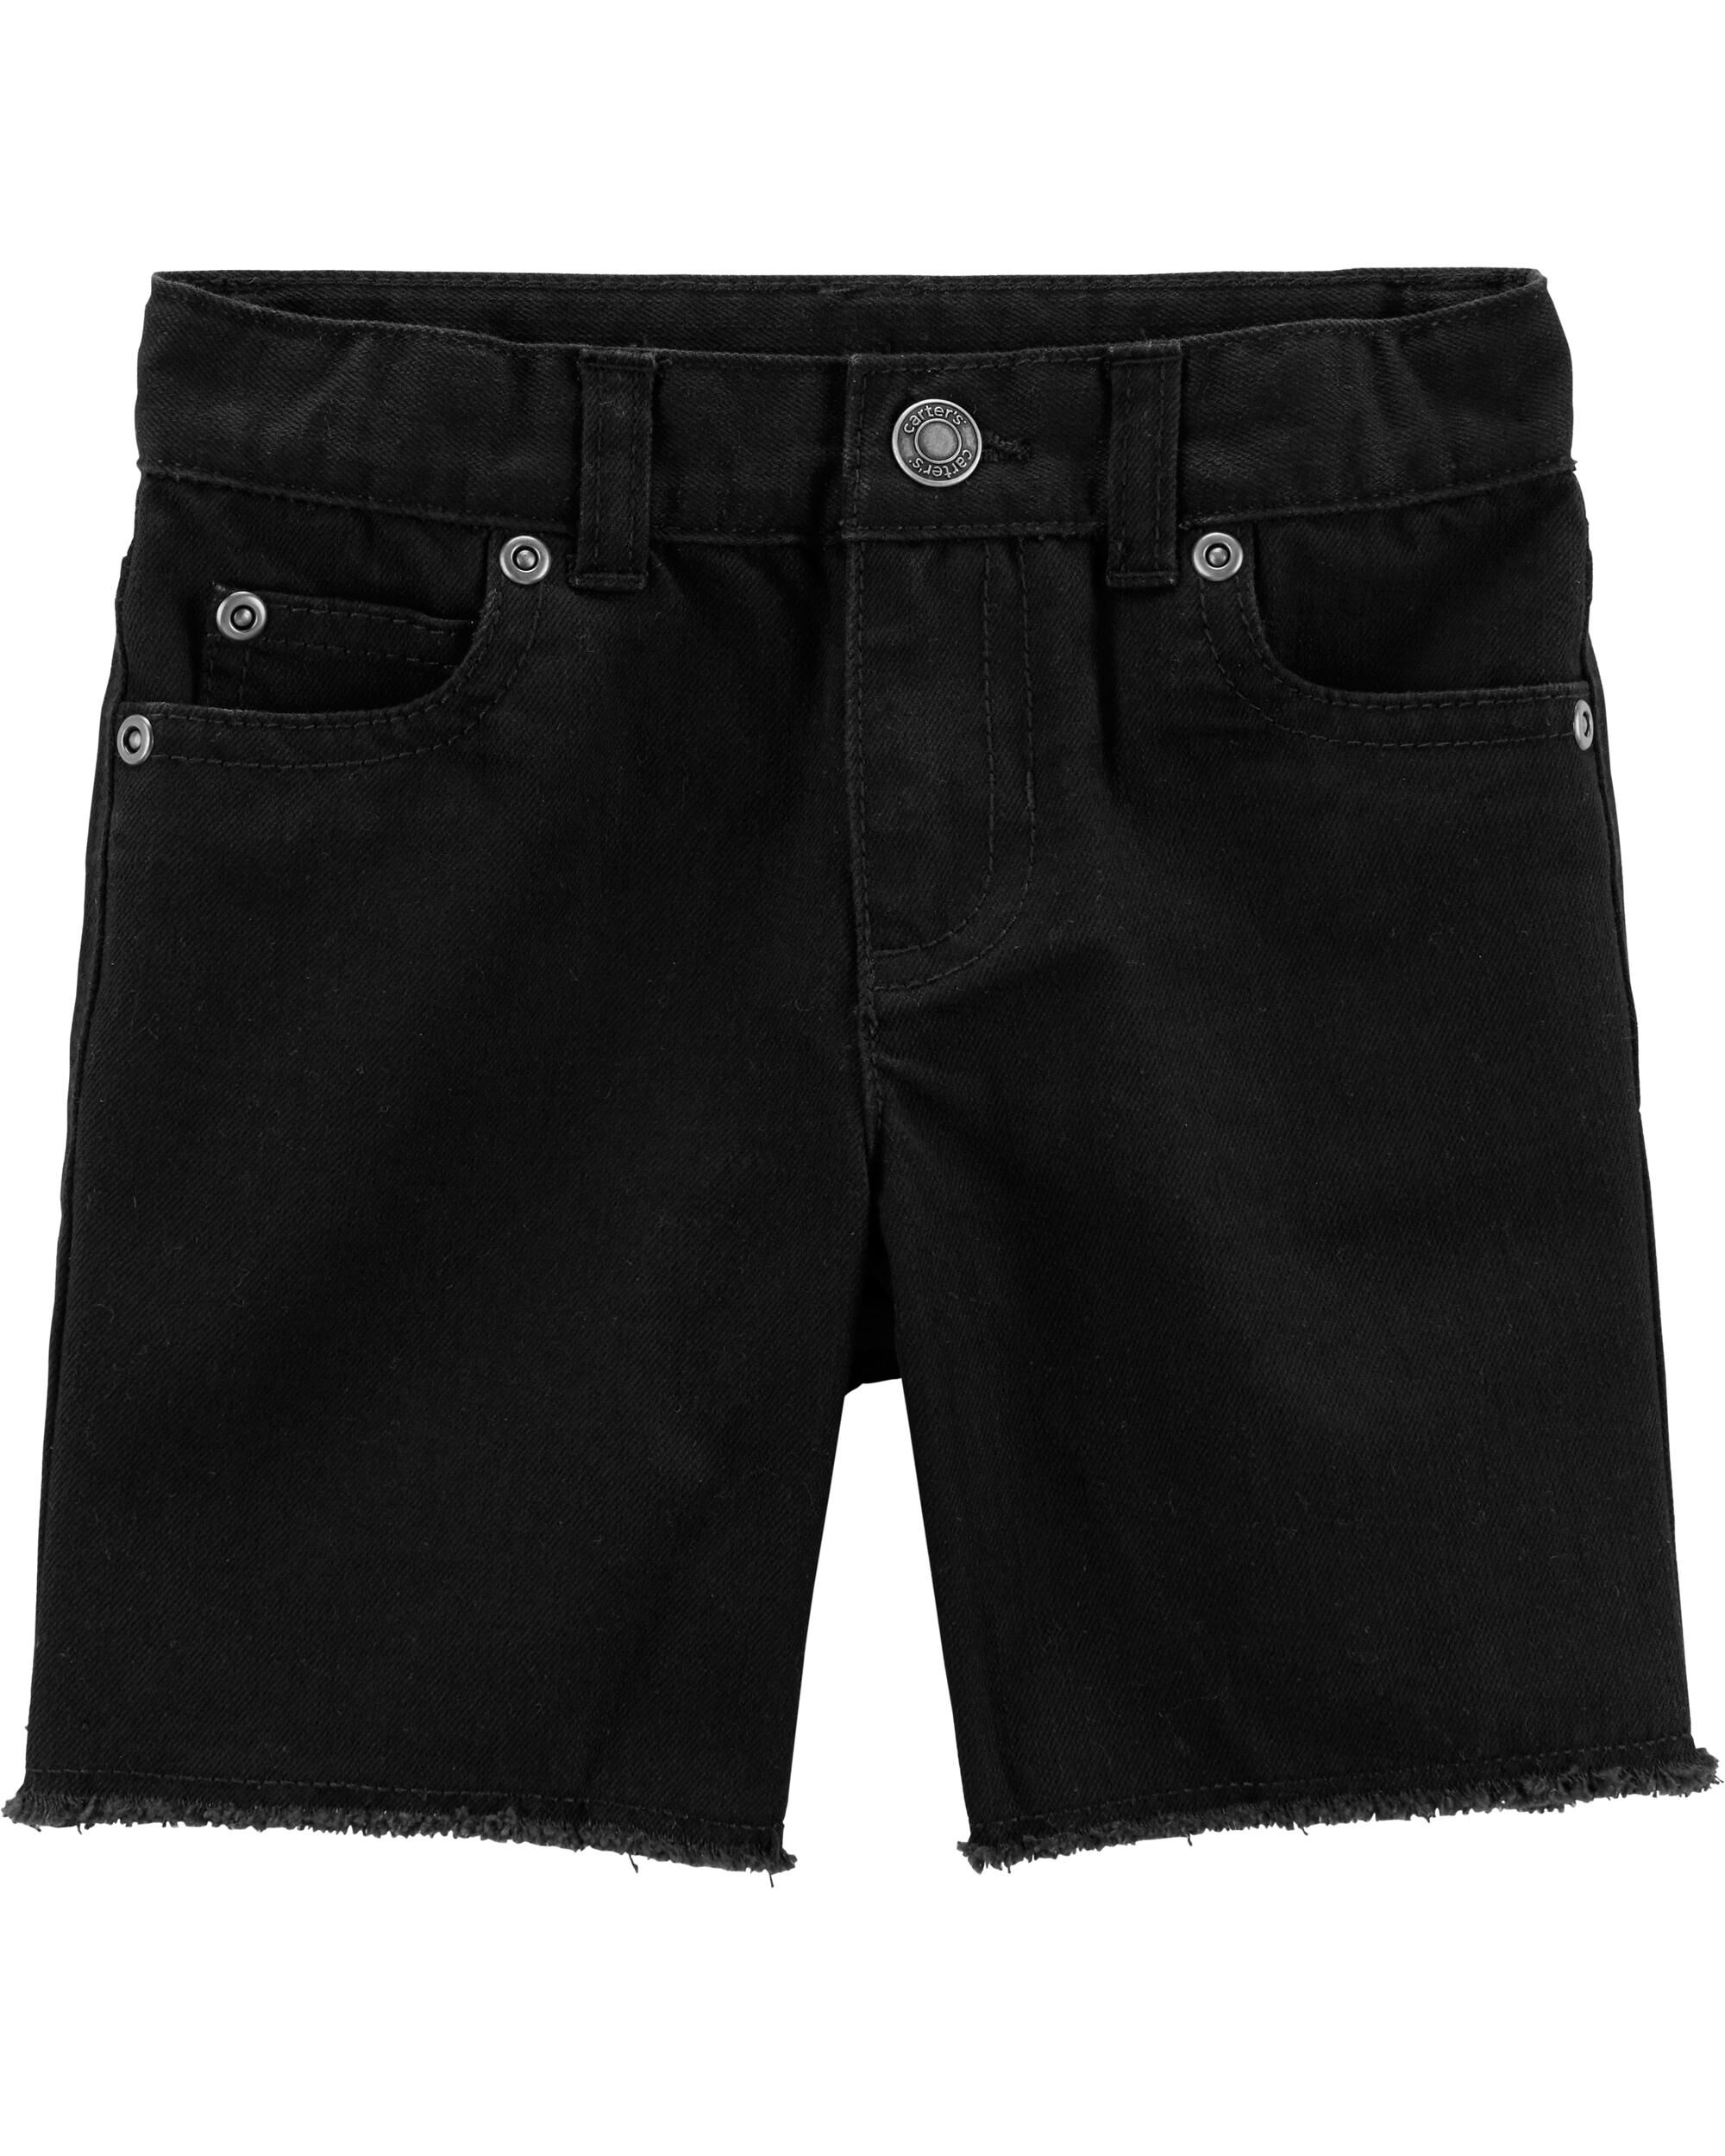 *Clearance*  Flat-Front Twill Shorts